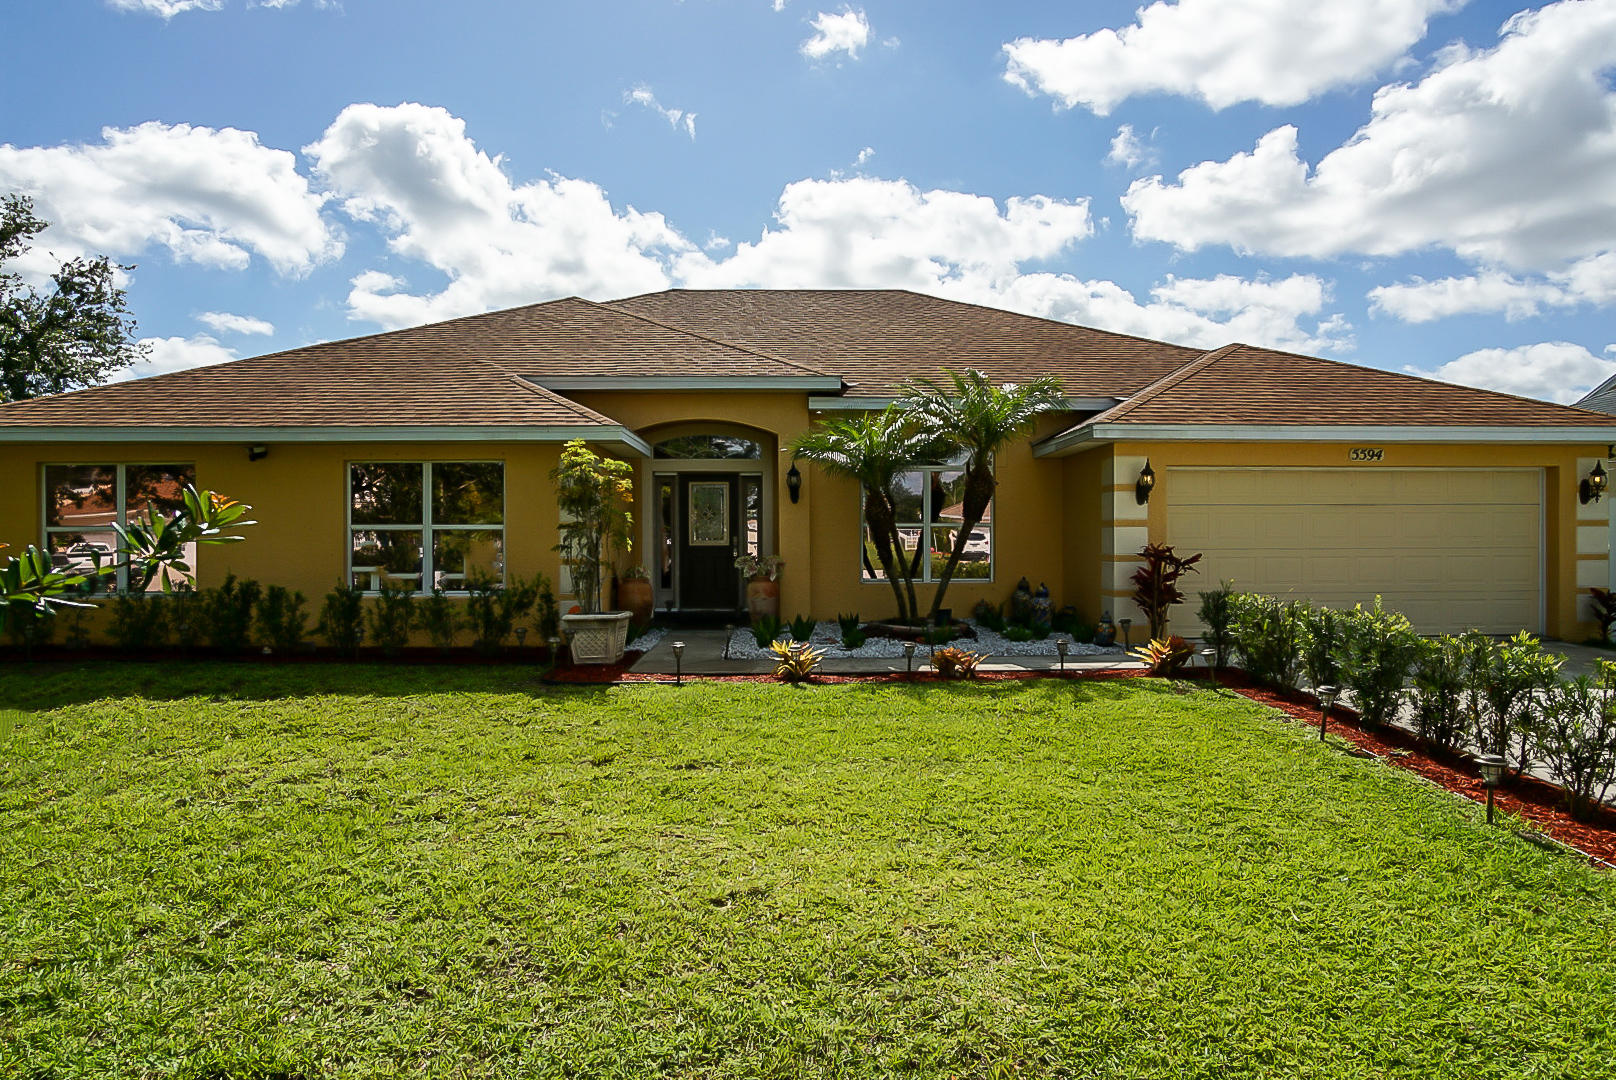 Home for sale in PORT ST LUCIE -SECTION 44-BLK 3058 LOT 6 ( MAP 33/13N) (OR 1993-2114) Saint Lucie West Florida